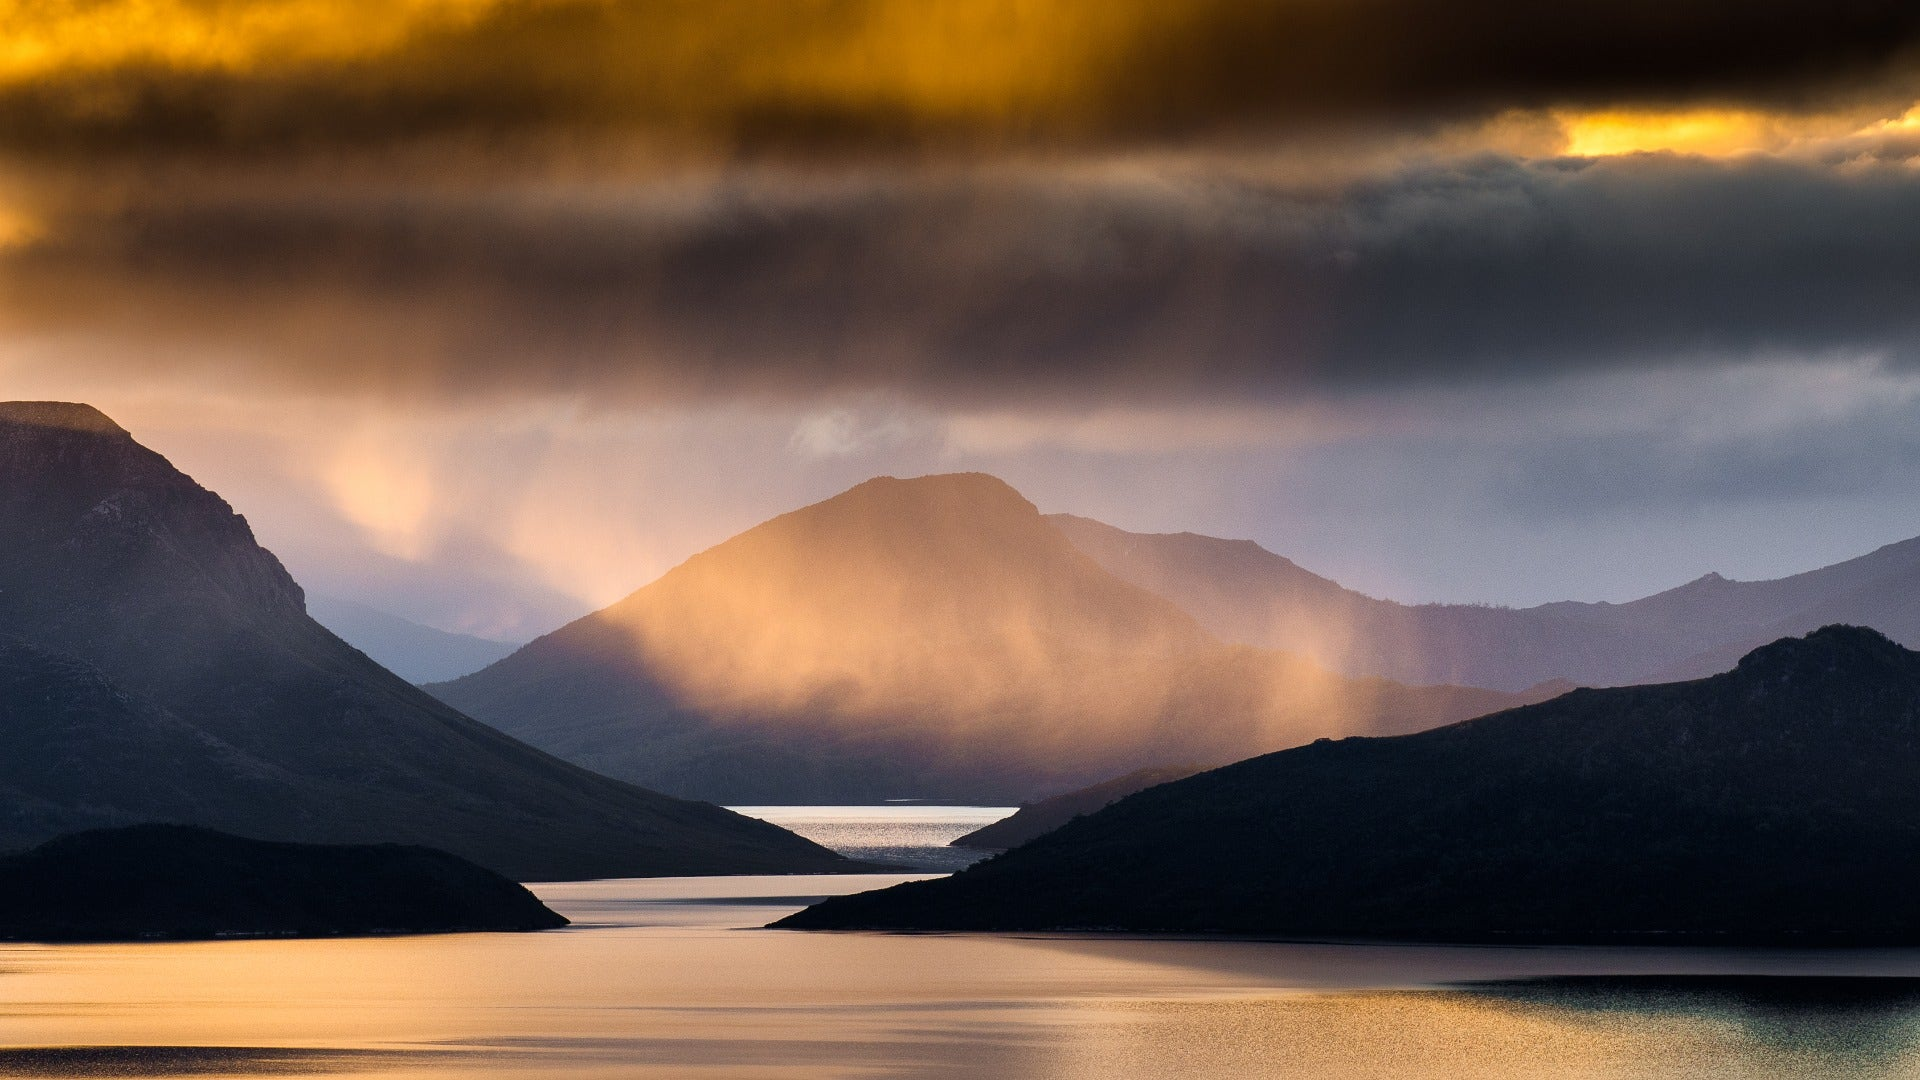 Lake Pedder - earlier. ©Cam Blake